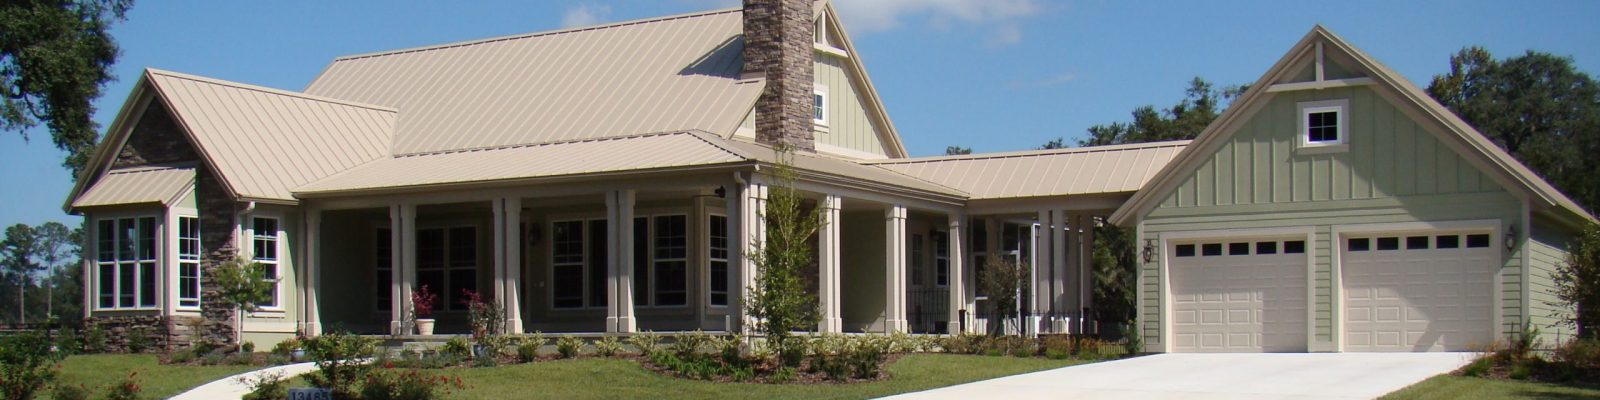 Remodeling Contractor in Cookeville TN   Premier Quality Home Improvements